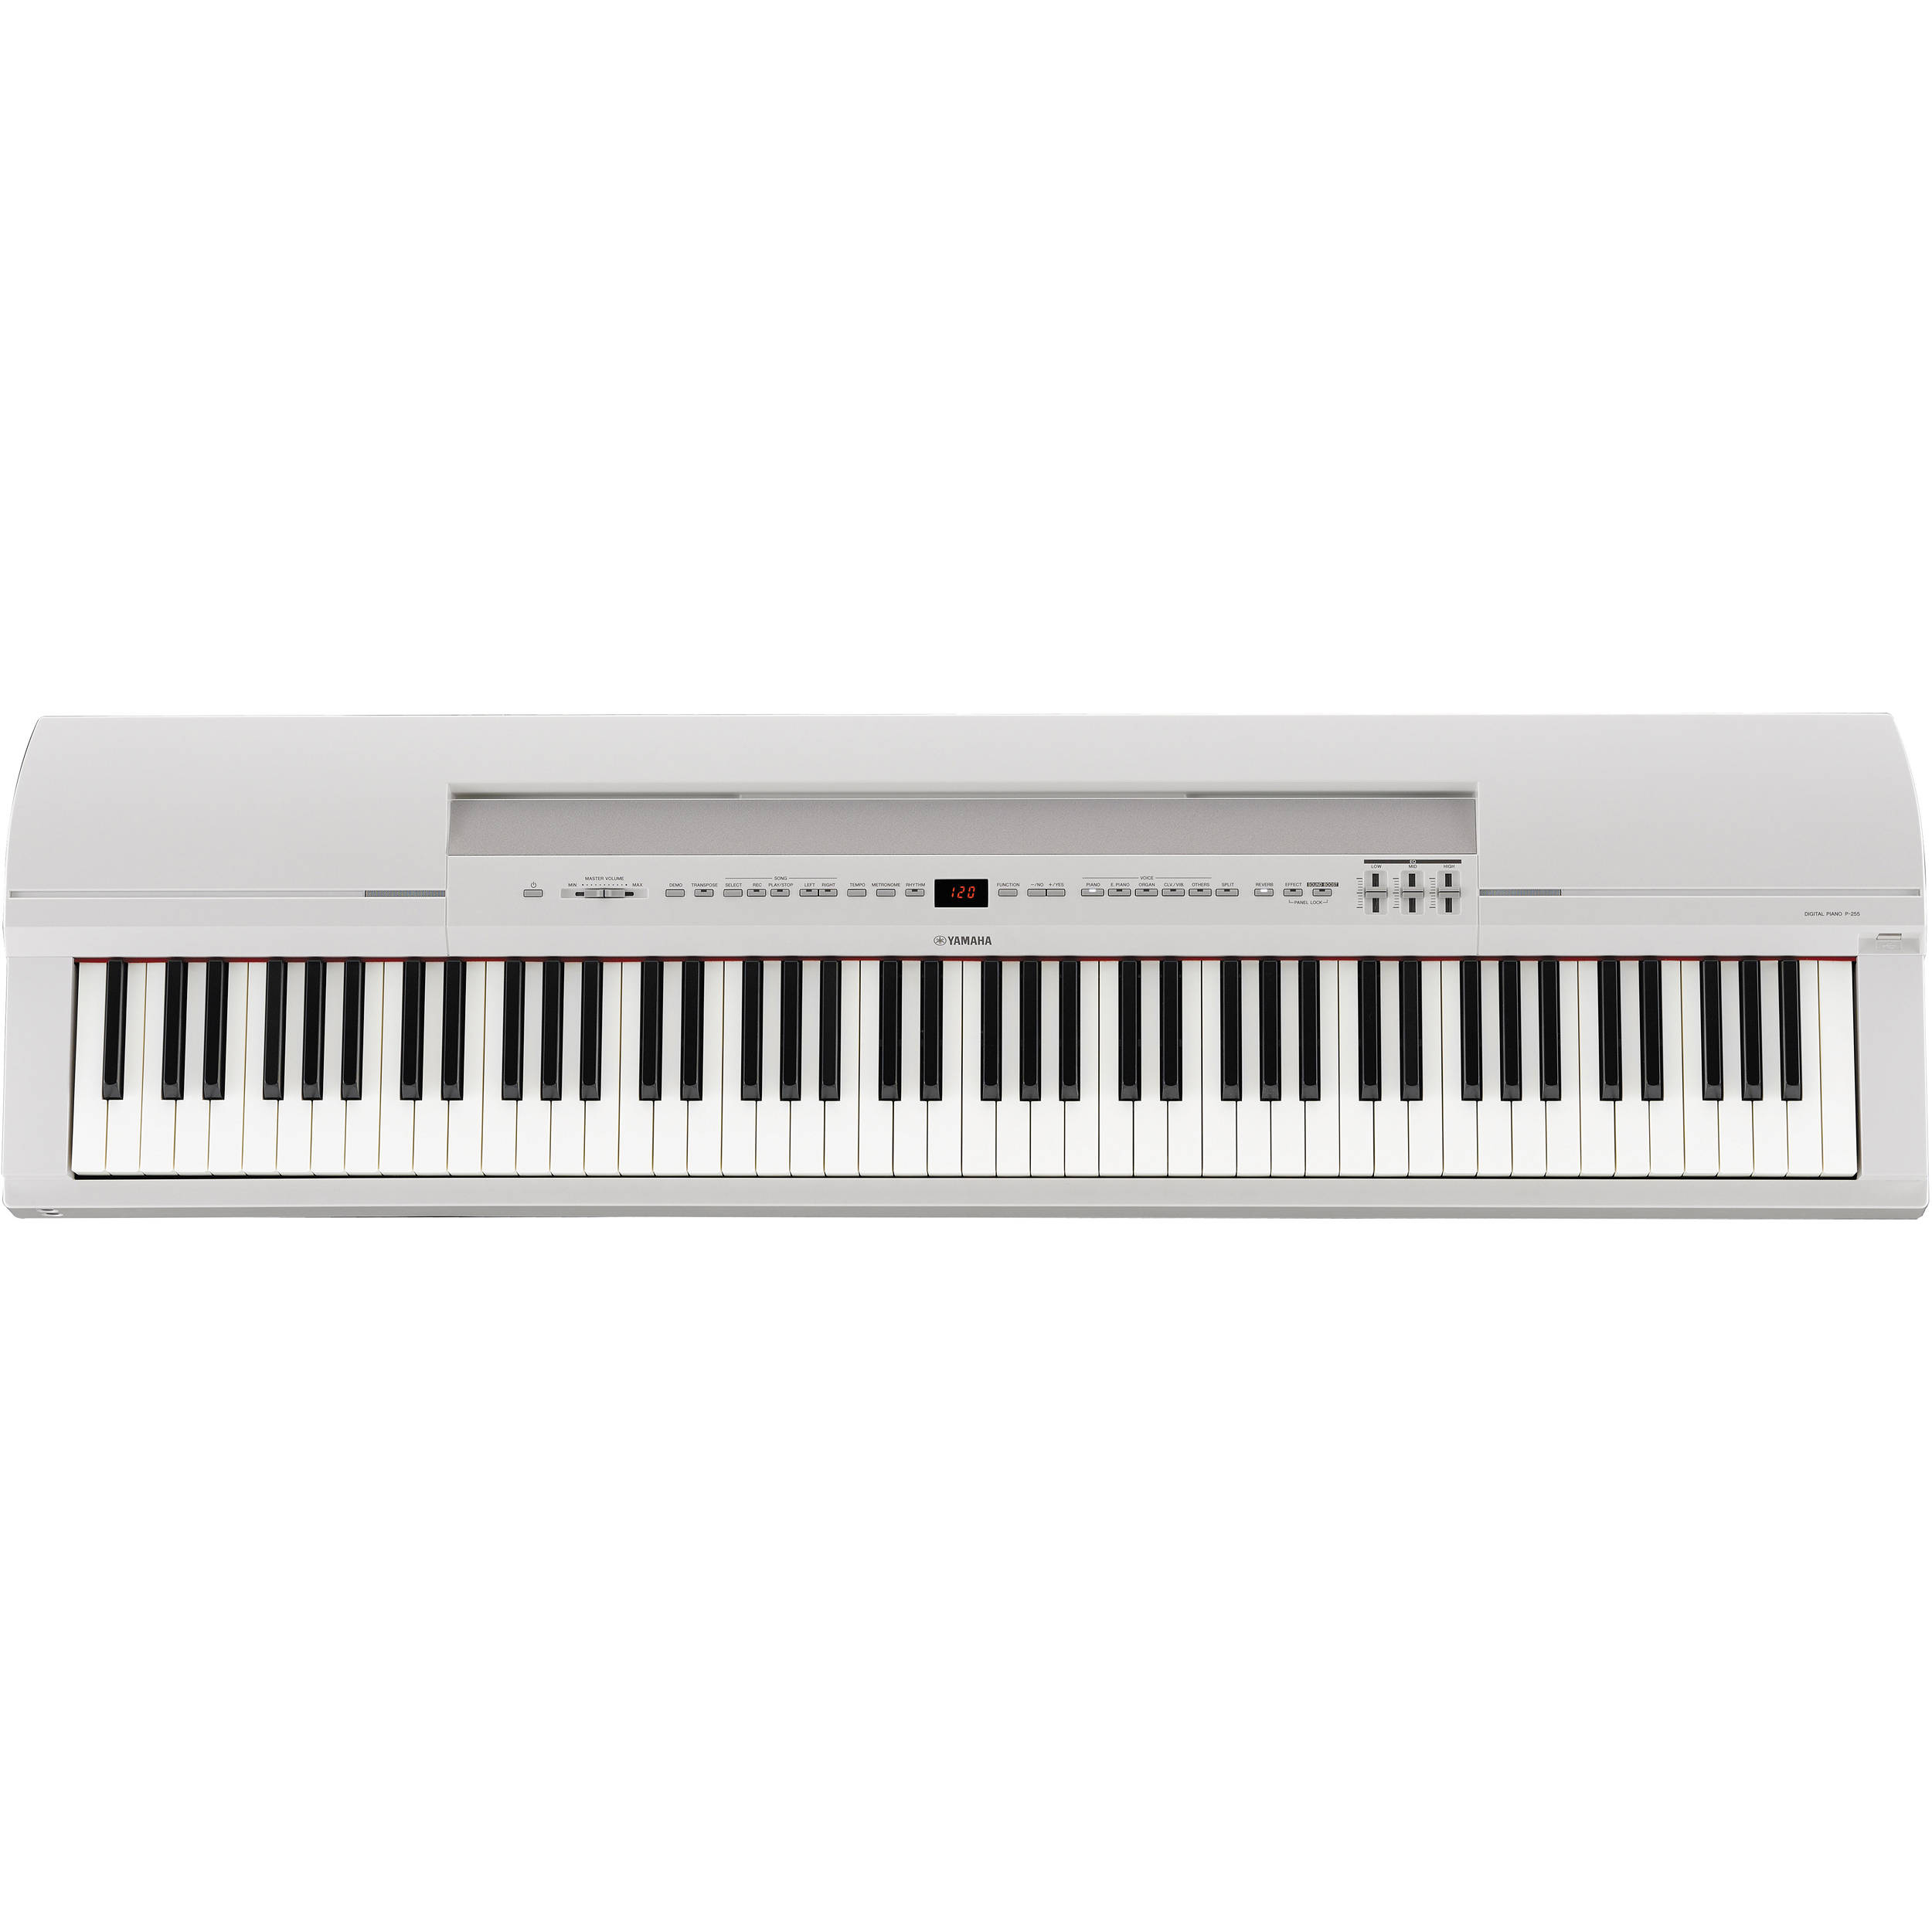 yamaha p 255wh digital piano white p255wh b h photo video. Black Bedroom Furniture Sets. Home Design Ideas